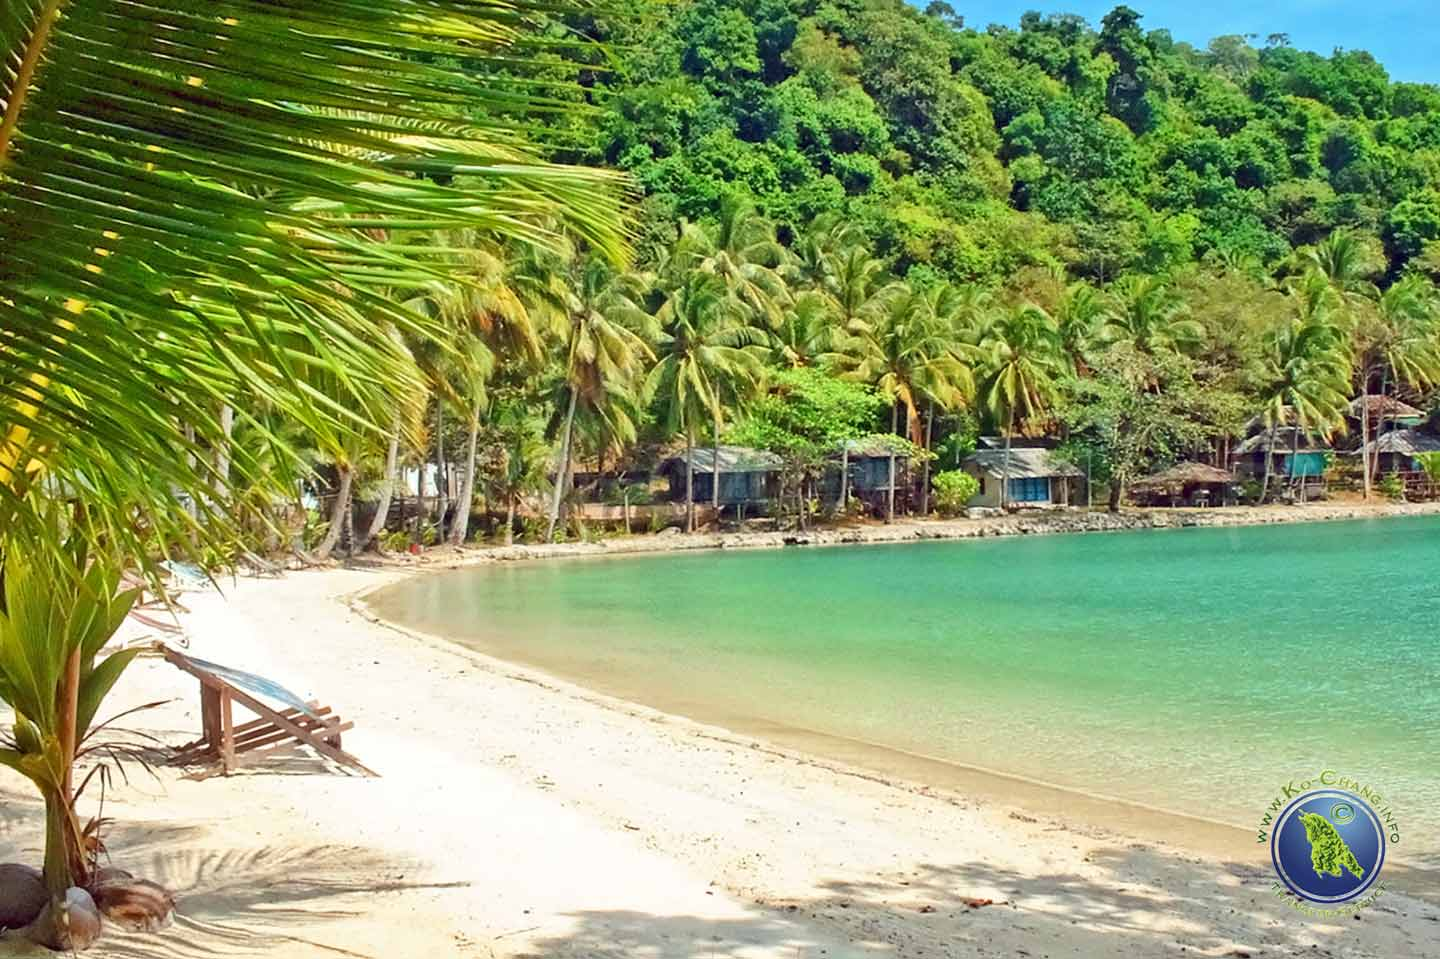 Koh Ngam bei Koh Chang in Thailand